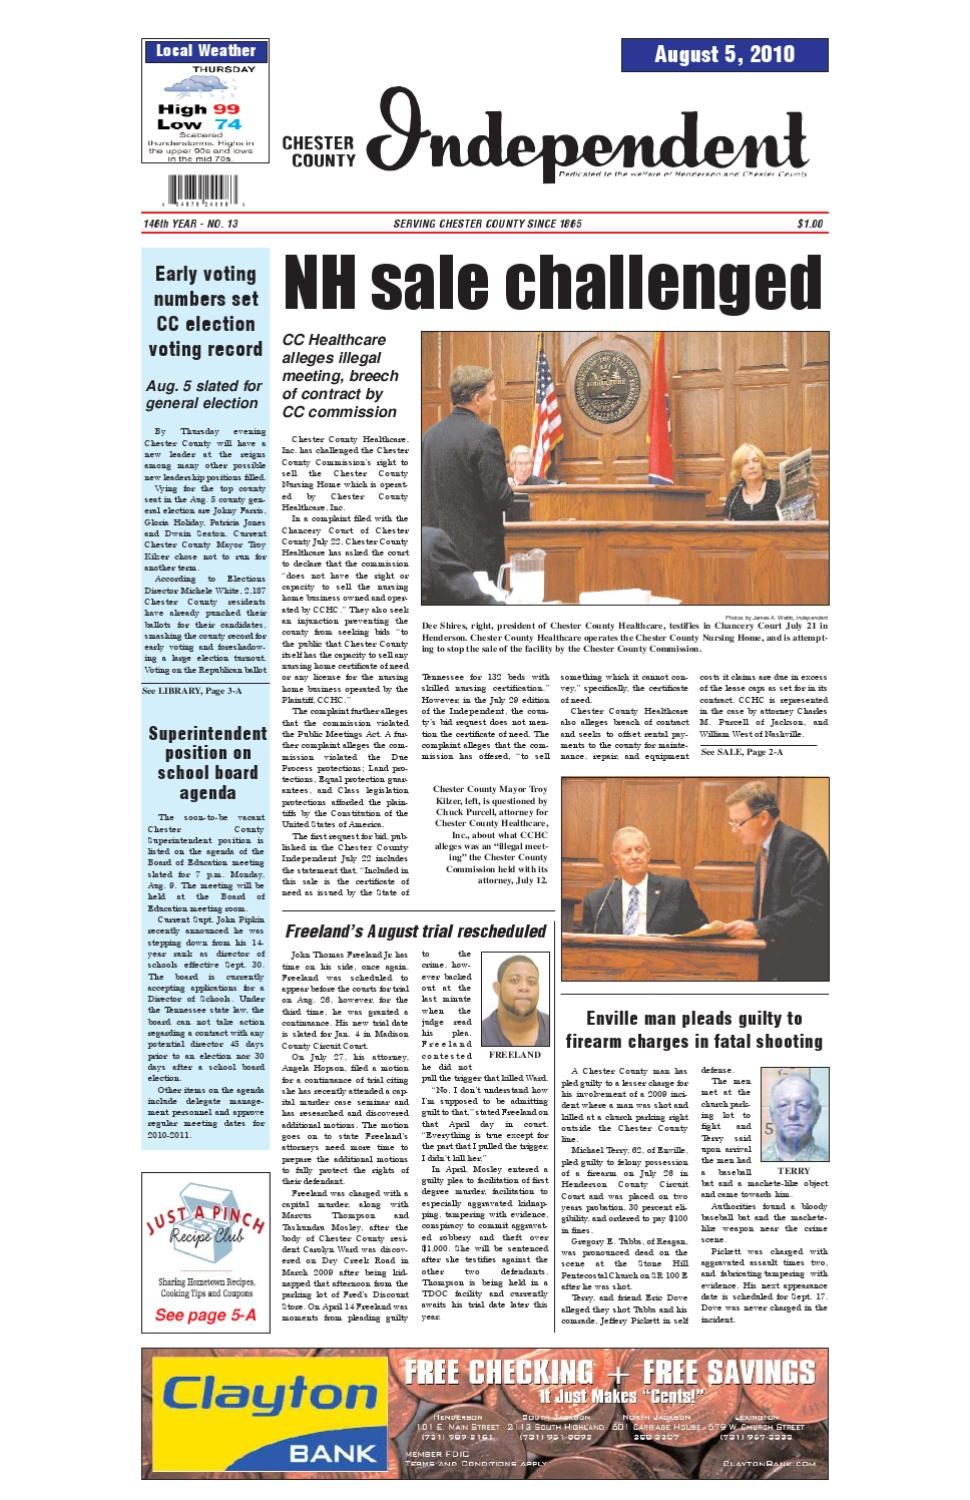 Tennessee chester county enville - Chester County Independent 08 05 10 By Chester County Independent Issuu